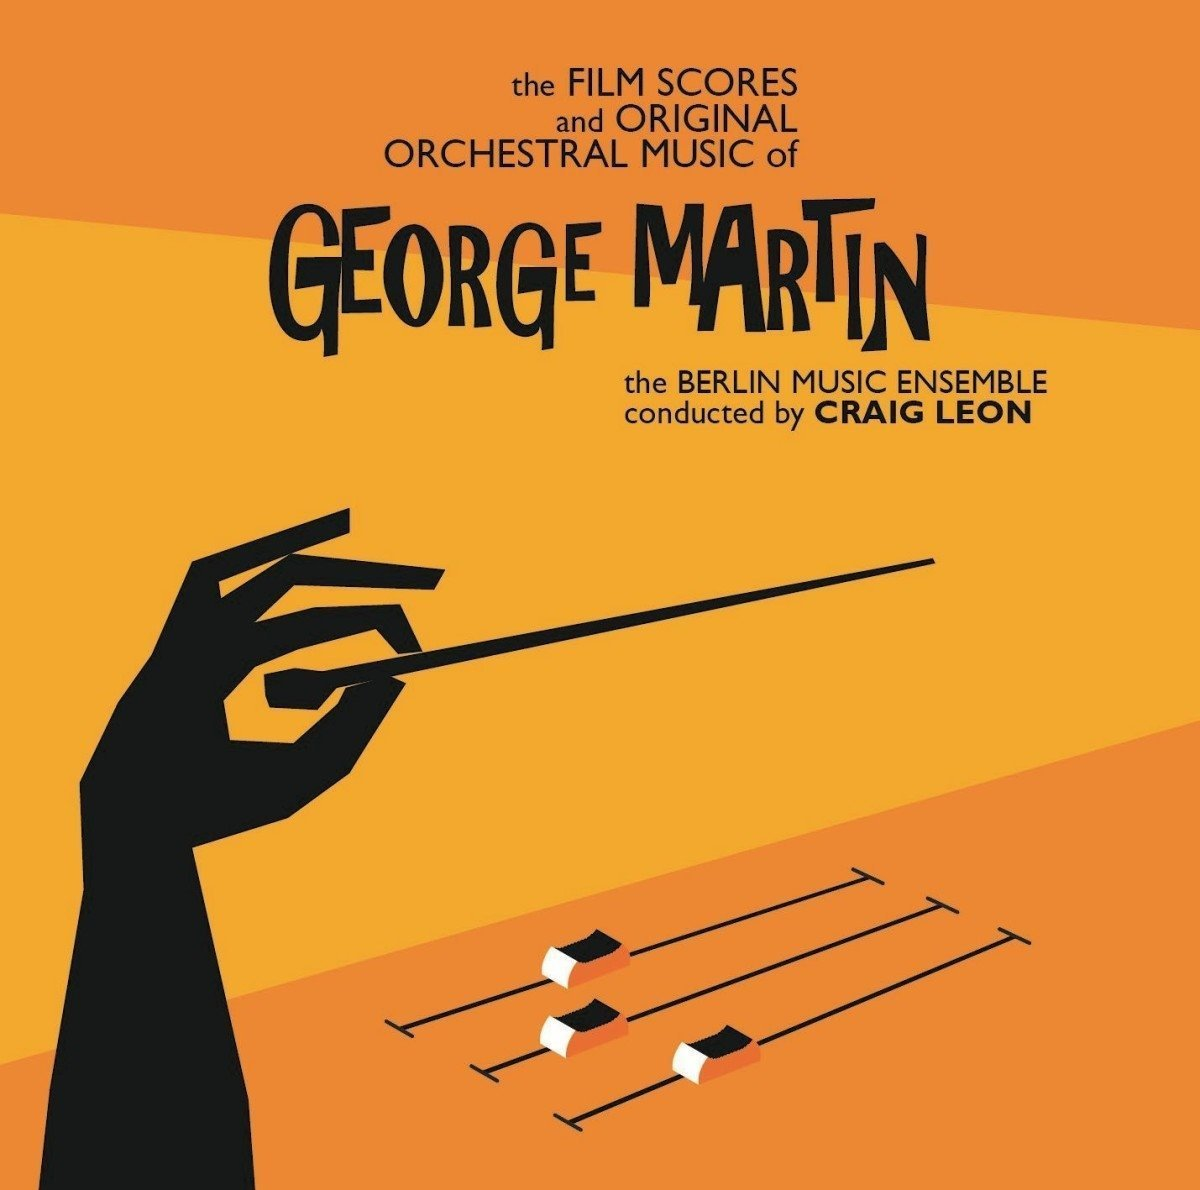 The Film Scores and Original Orchestral Music of G